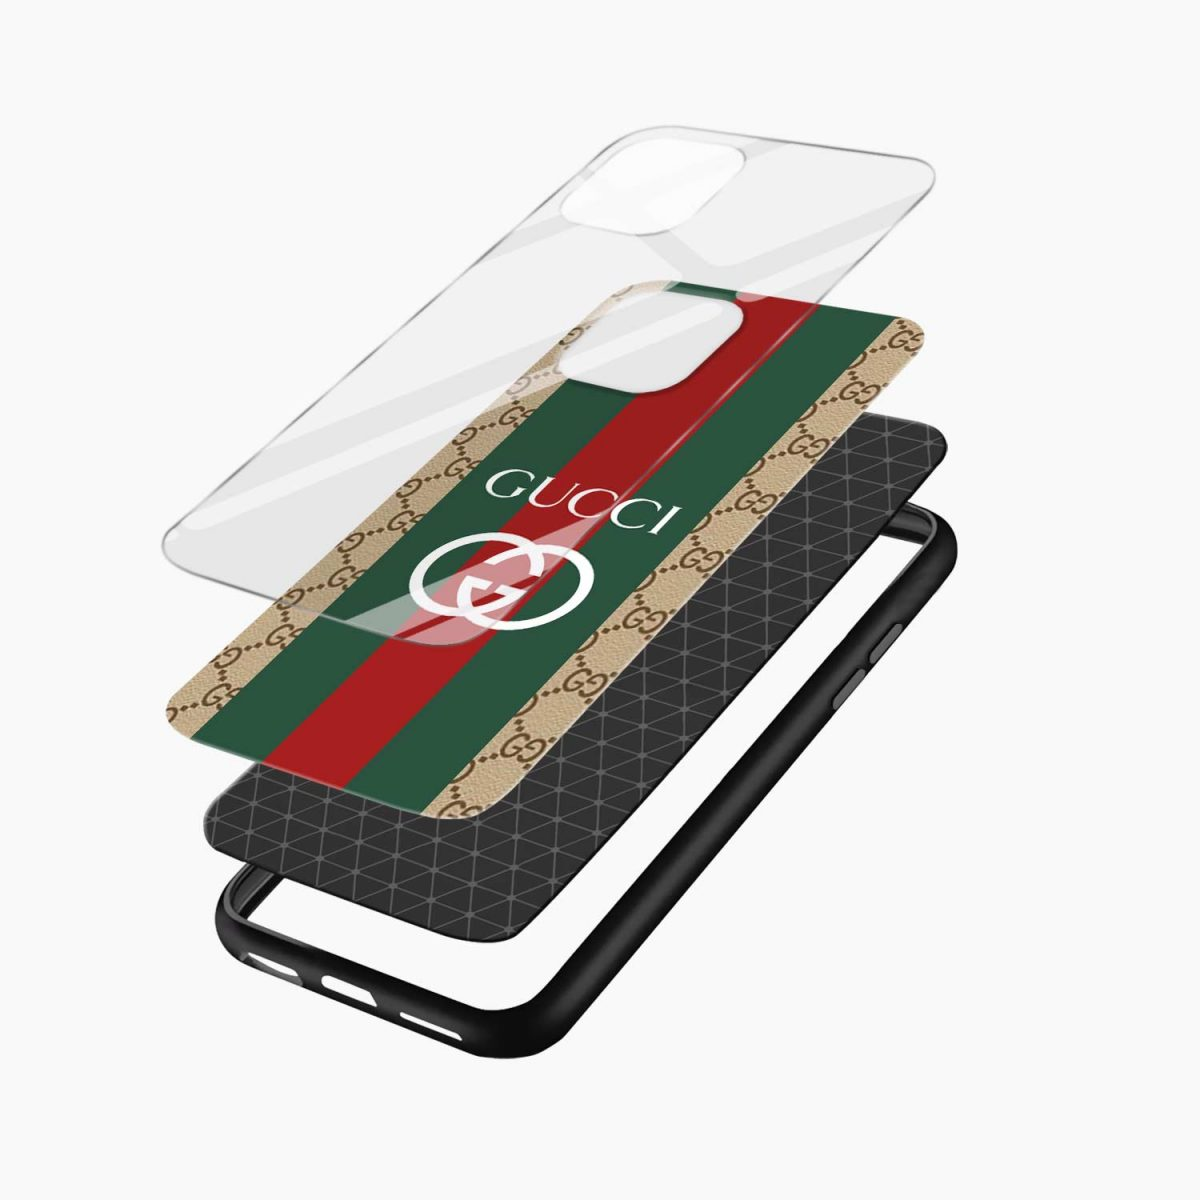 gucci strips pattern iphone back cover layers view